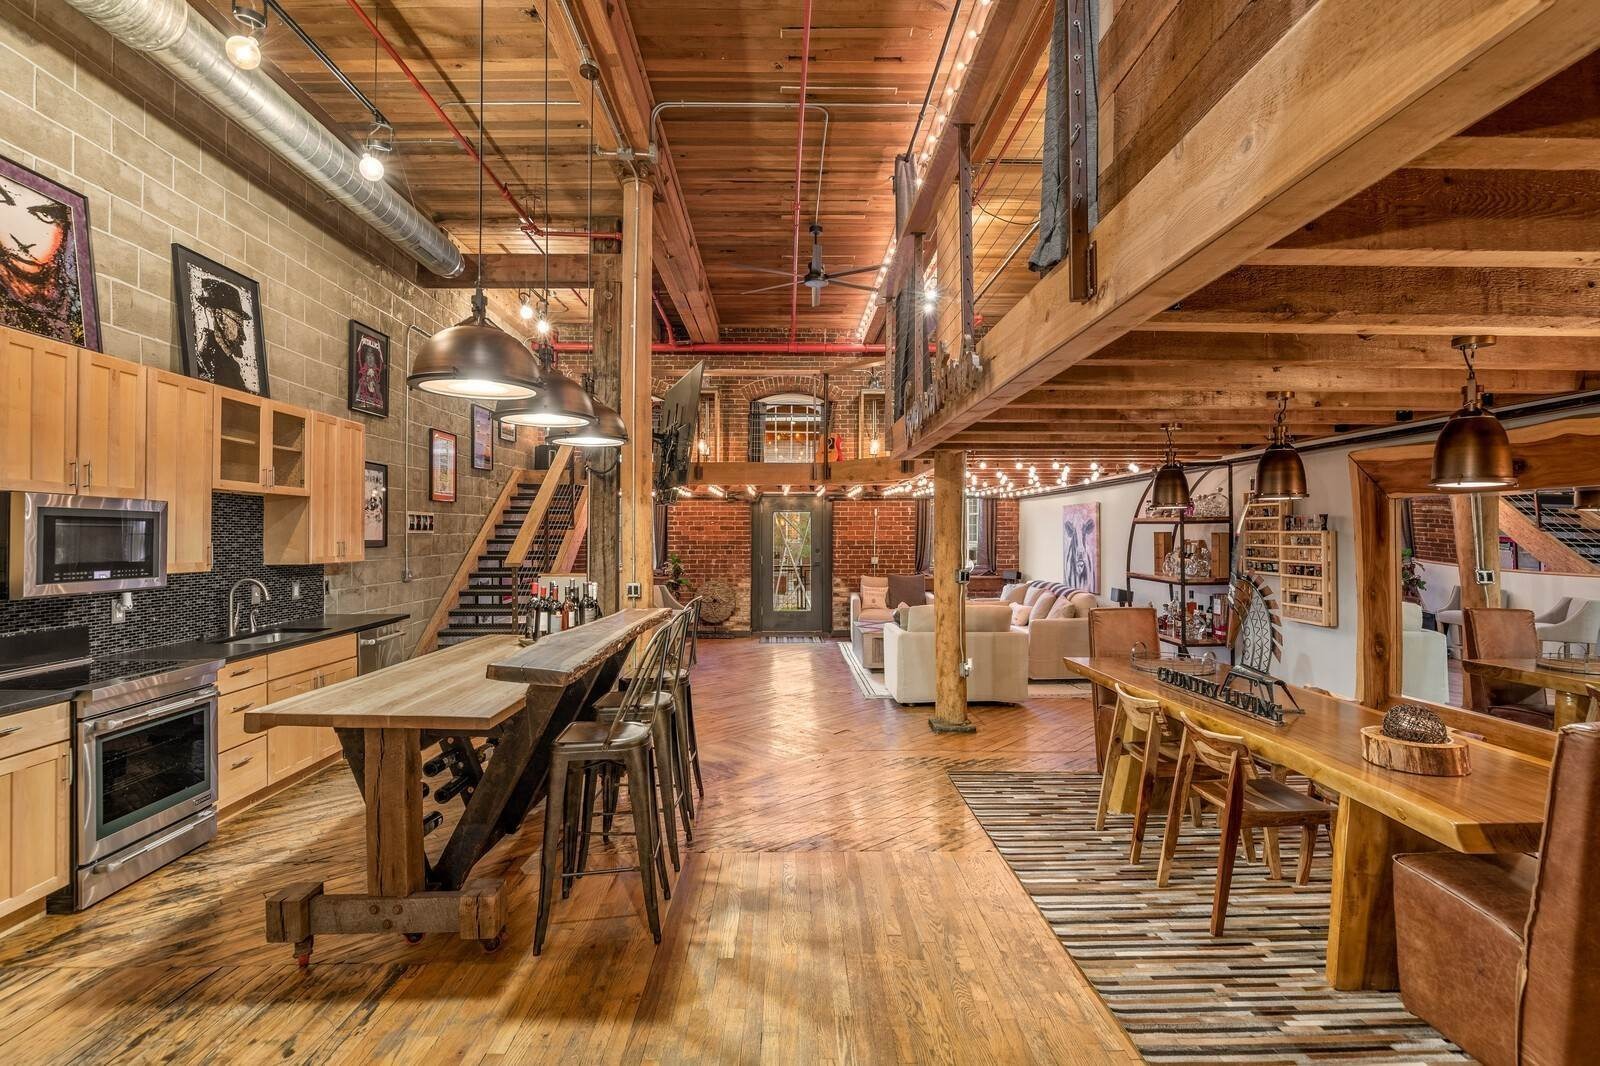 Lofts for Sale at 1400 Rosa L Parks Blvd #111 Nashville, Tennessee 37208 United States